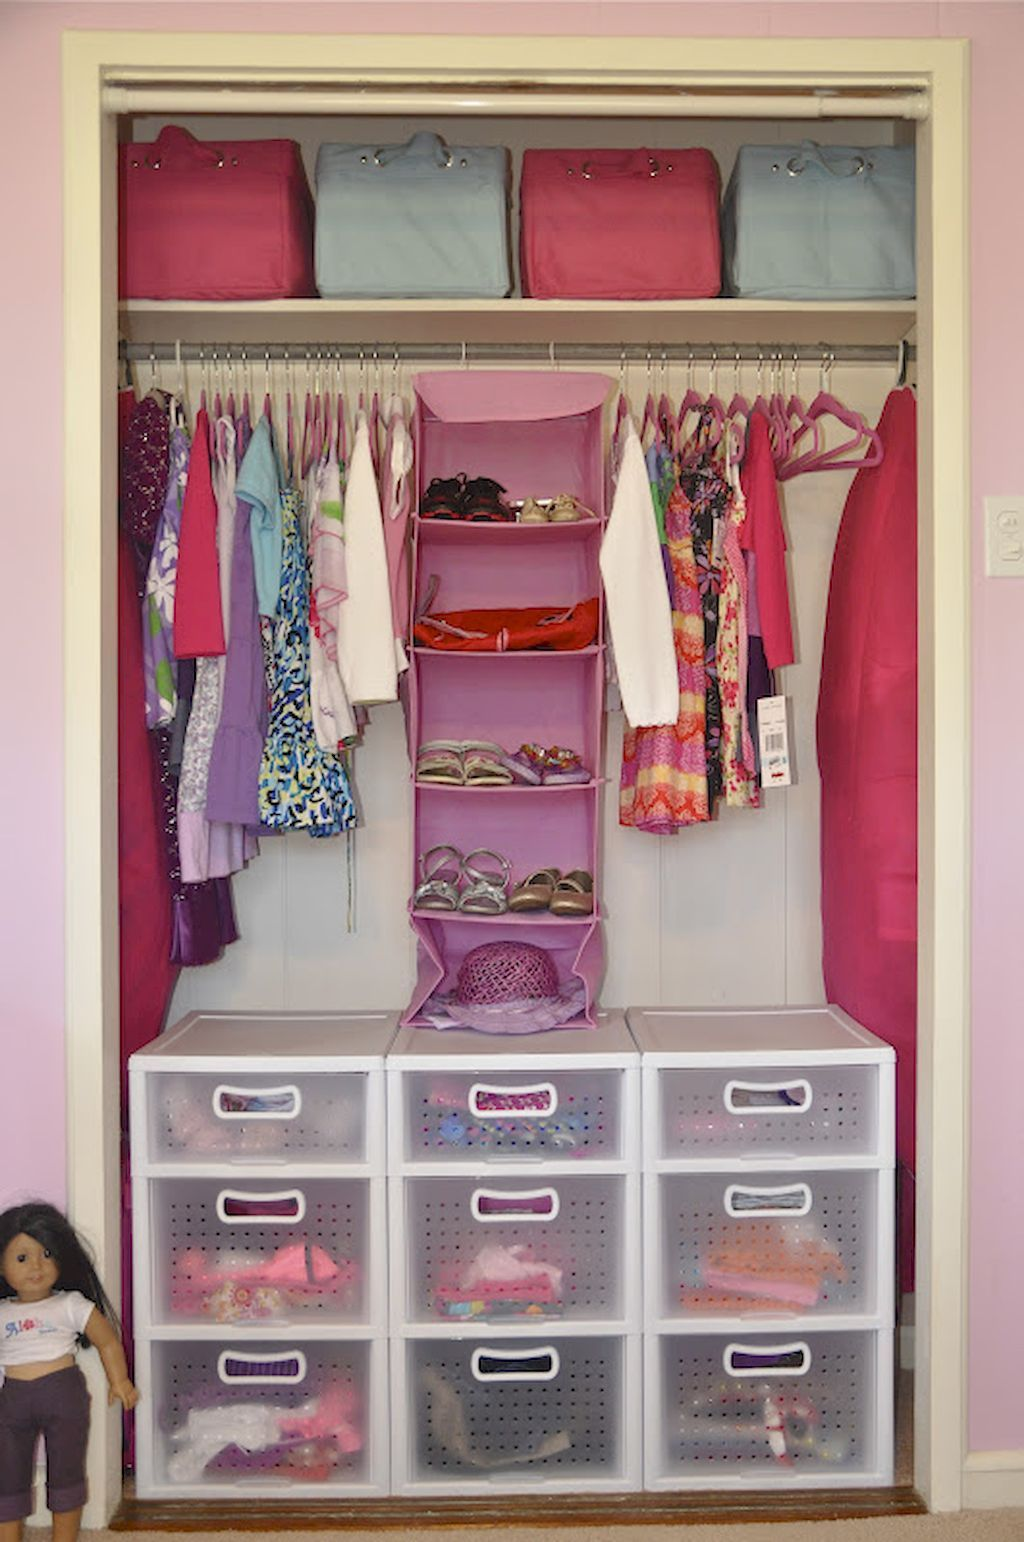 Closet Organization Ideas On A Budget Part - 46: 60 Tips And Tricks Dorm Room Organization Storage Ideas On A Budget